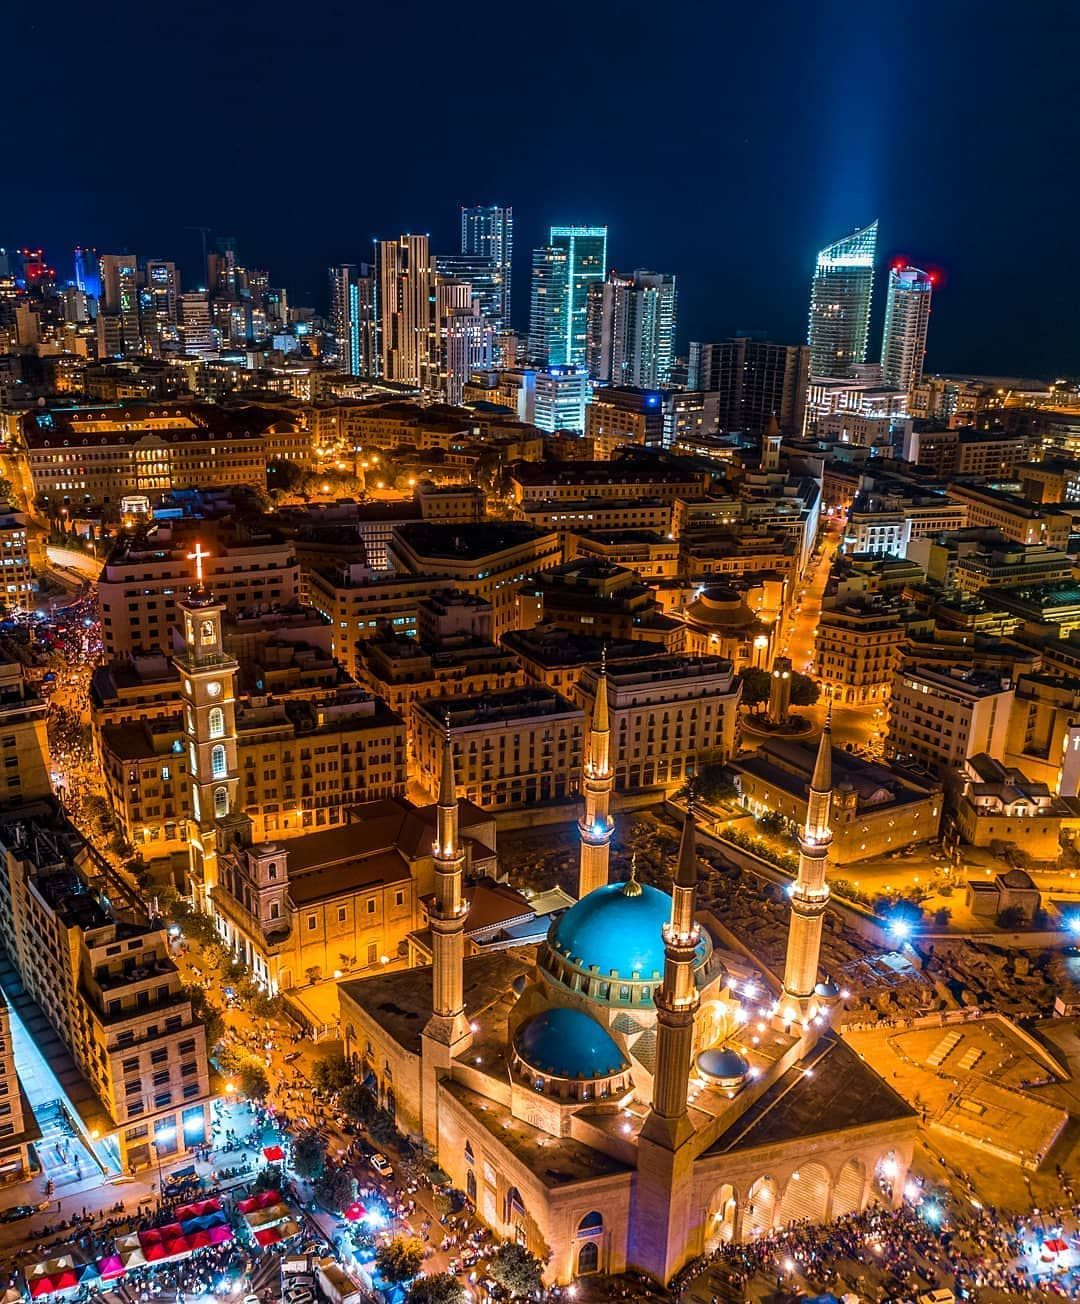 Repost By Reposta App The Lights Of Freedom Beirut Lebanon Downtown Capital Revolution Protest Djiglobal Lebanon Beirut Lebanon Beirut